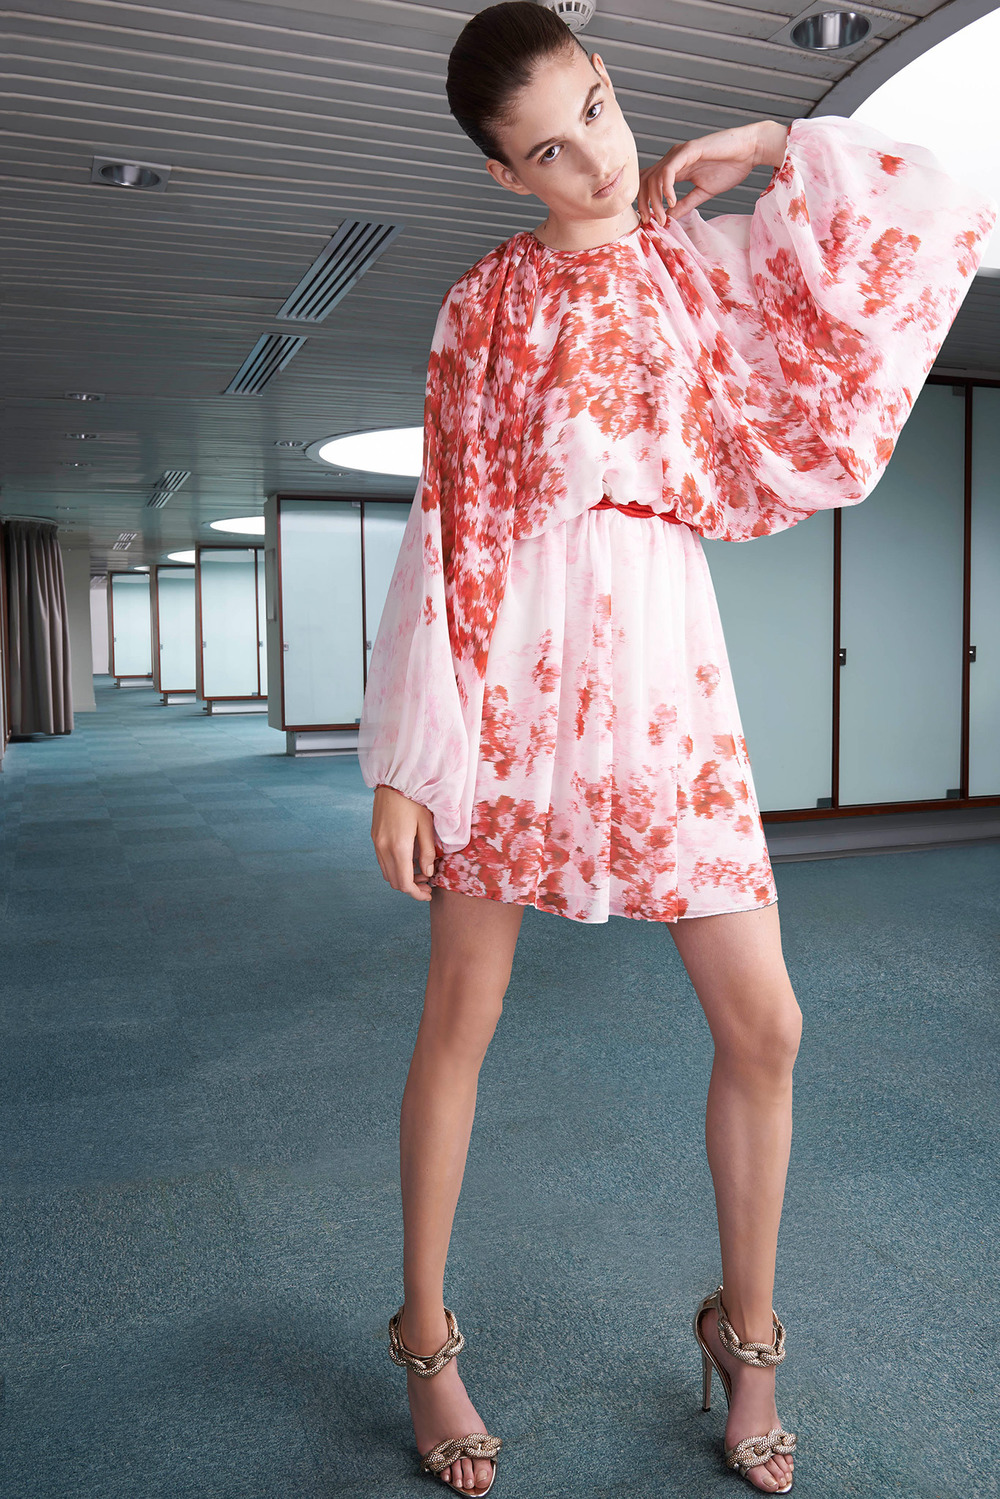 Gianbattista Valli Resort 2015